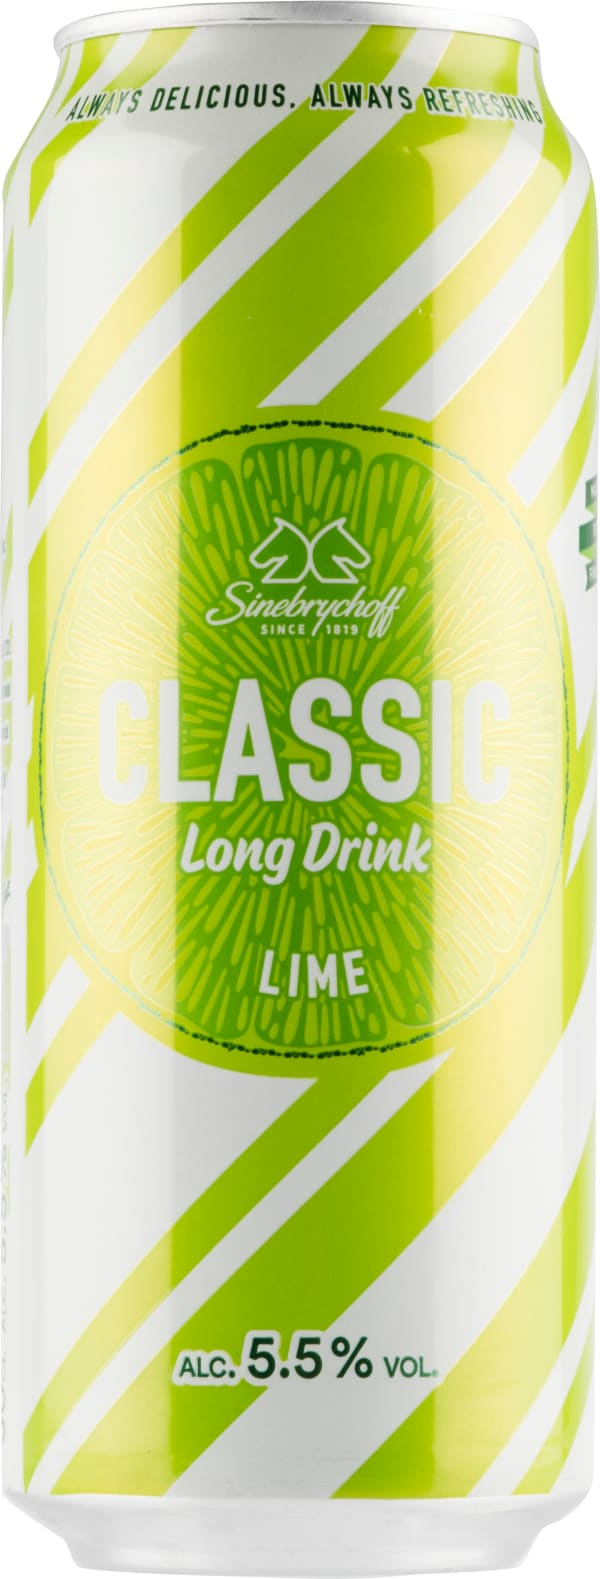 Sinebrychoff Classic Long Drink Lime can